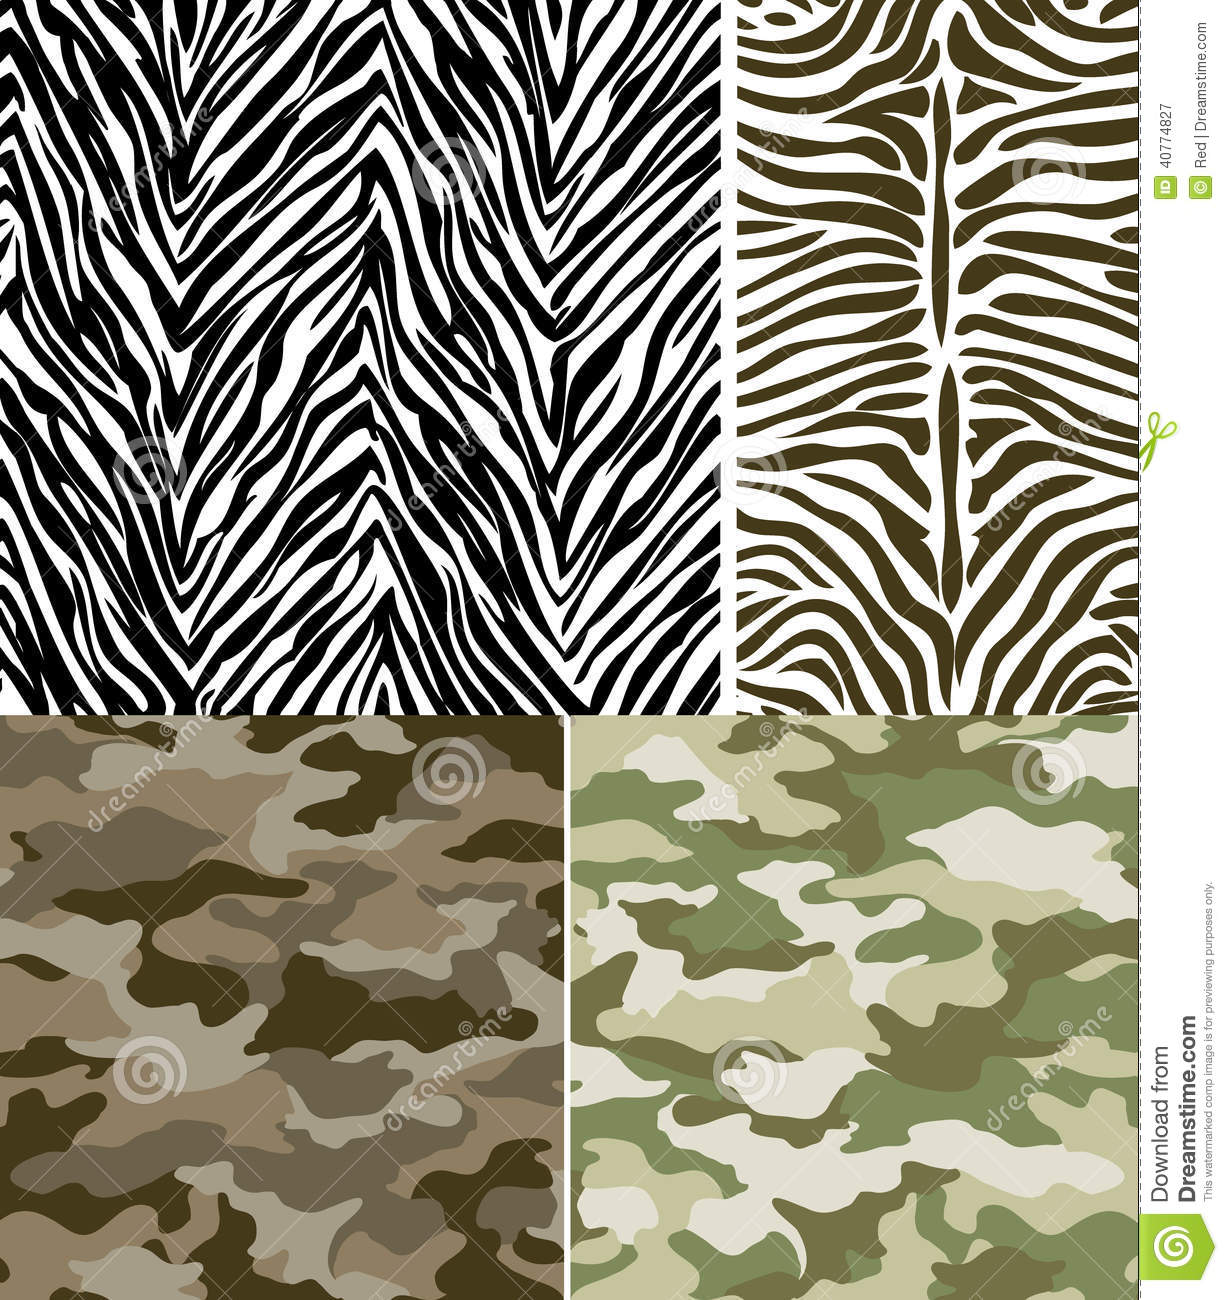 Zebra Stripes And Camouflage Pattern Set Stock Vector